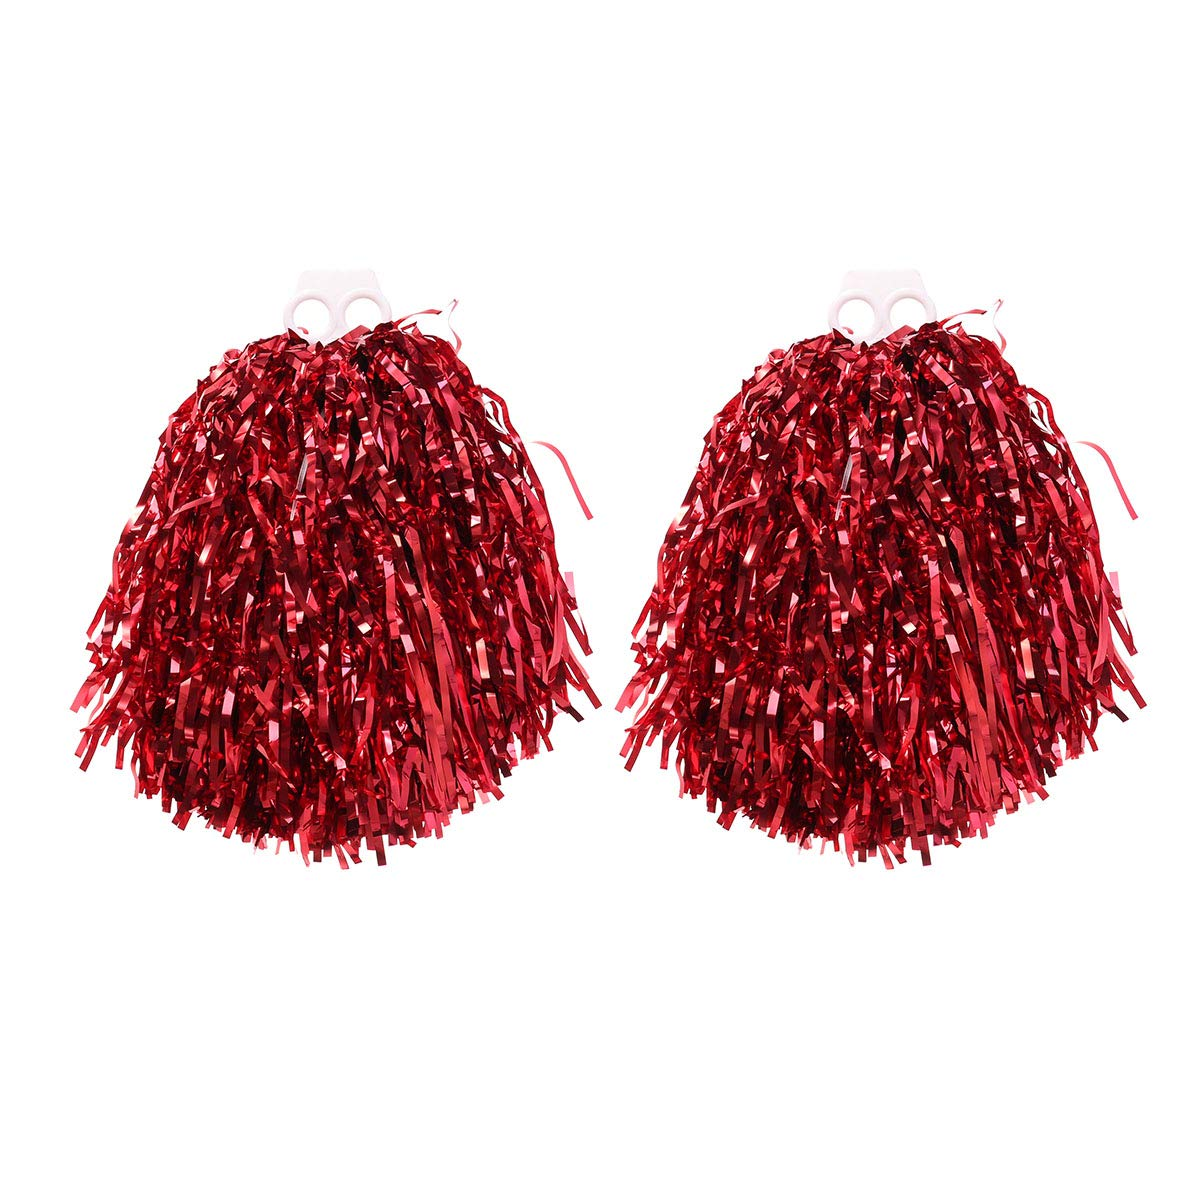 VORCOOL 1 Paar Cheerleader Pompons Metallic Tanzwedel Sport Pompoms Puschel Party Cheer Zubehör (Rot)